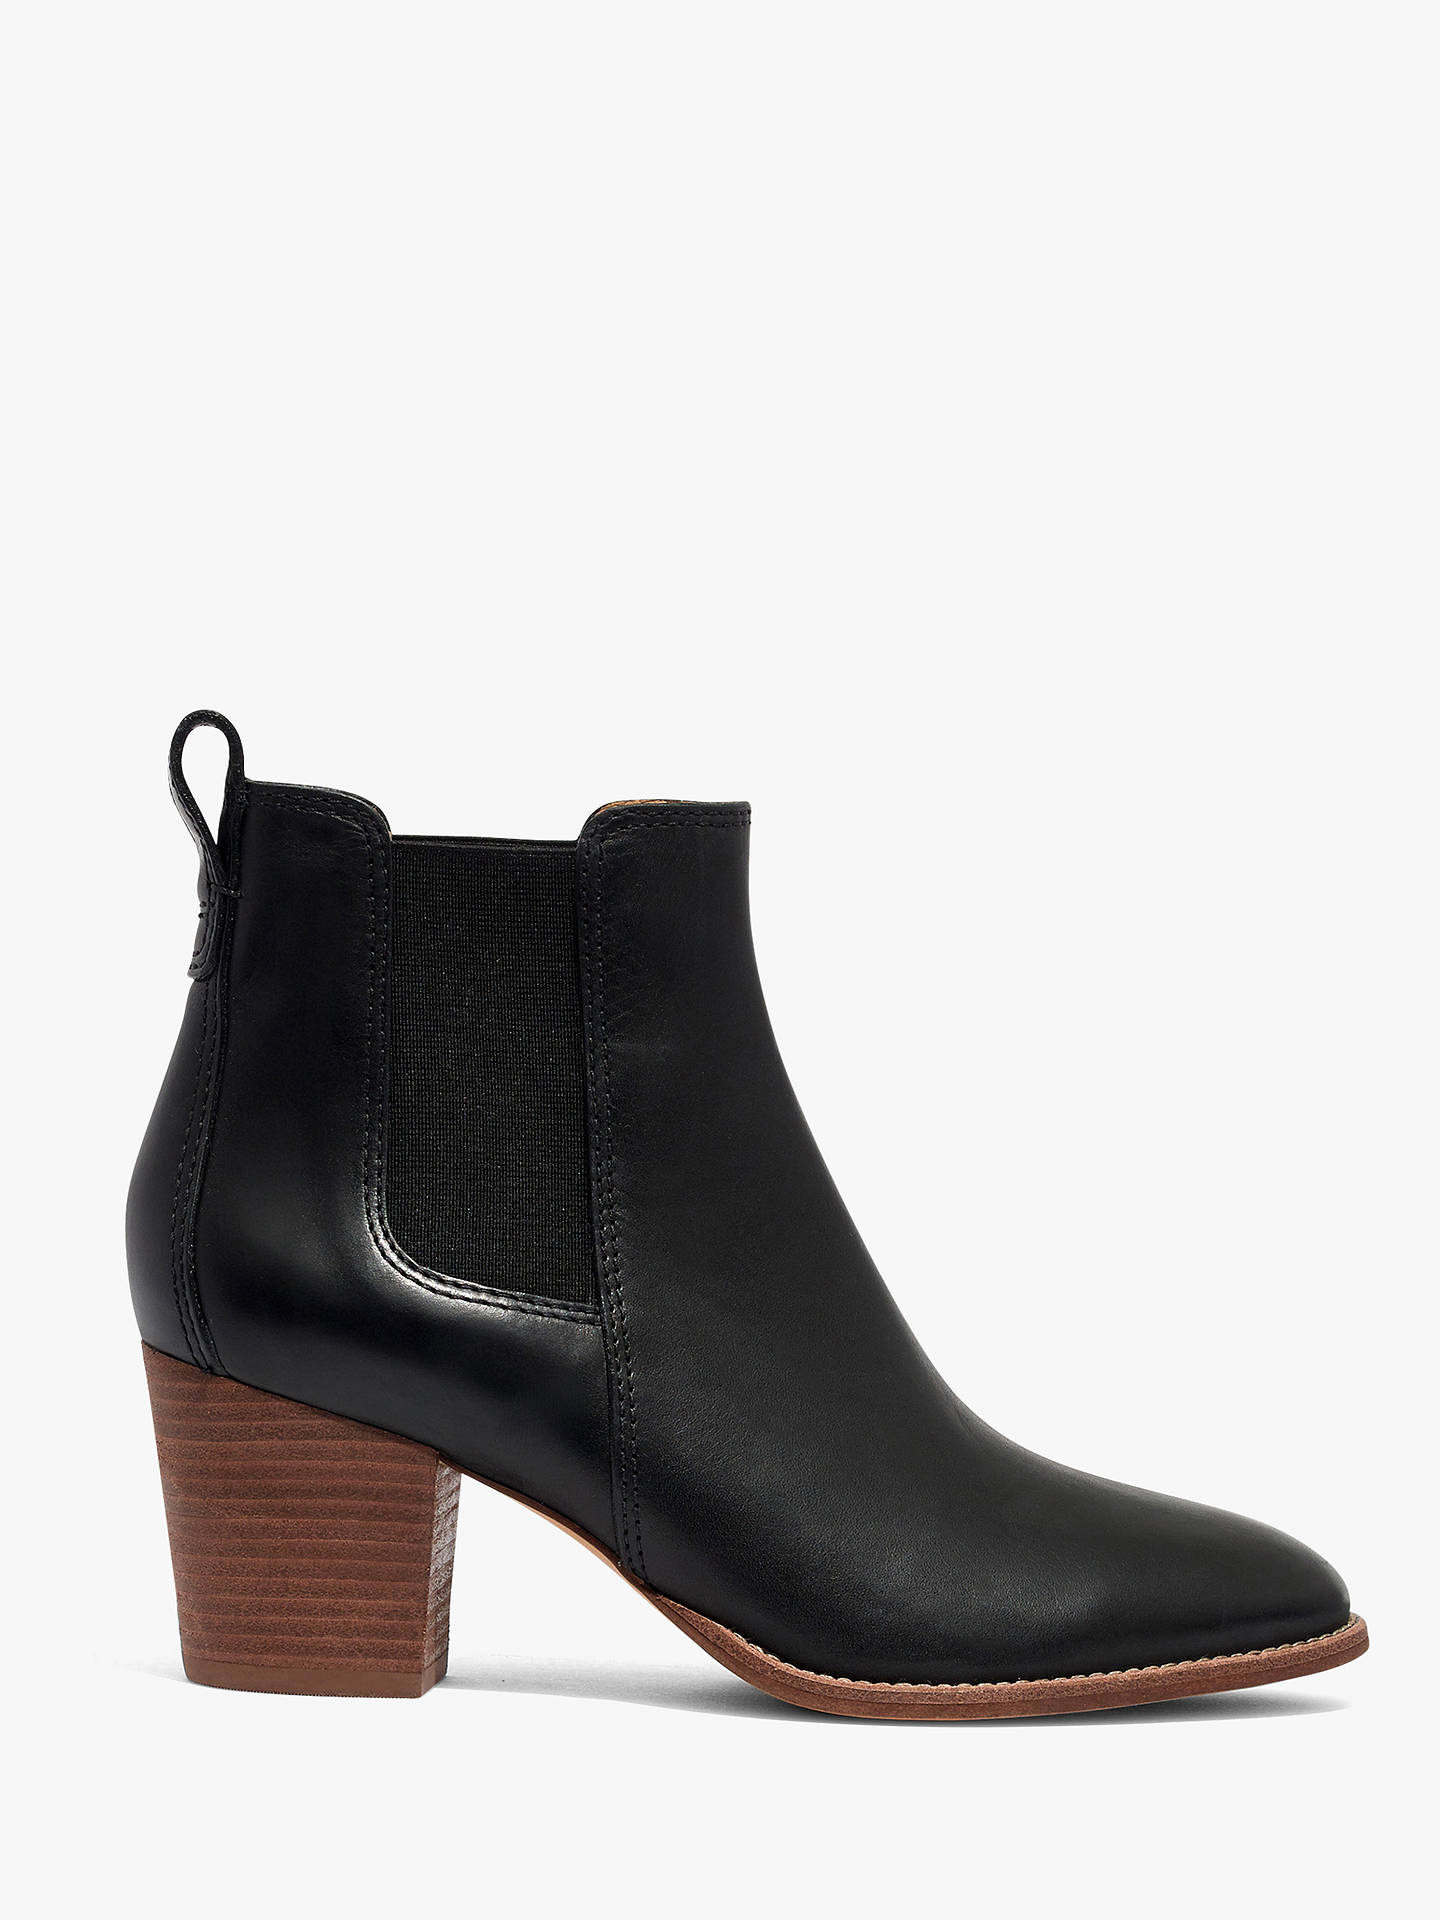 8f075e3db Buy Madewell Regan Leather Chelsea Ankle Boots, True Black, 3.5 Online at  johnlewis.